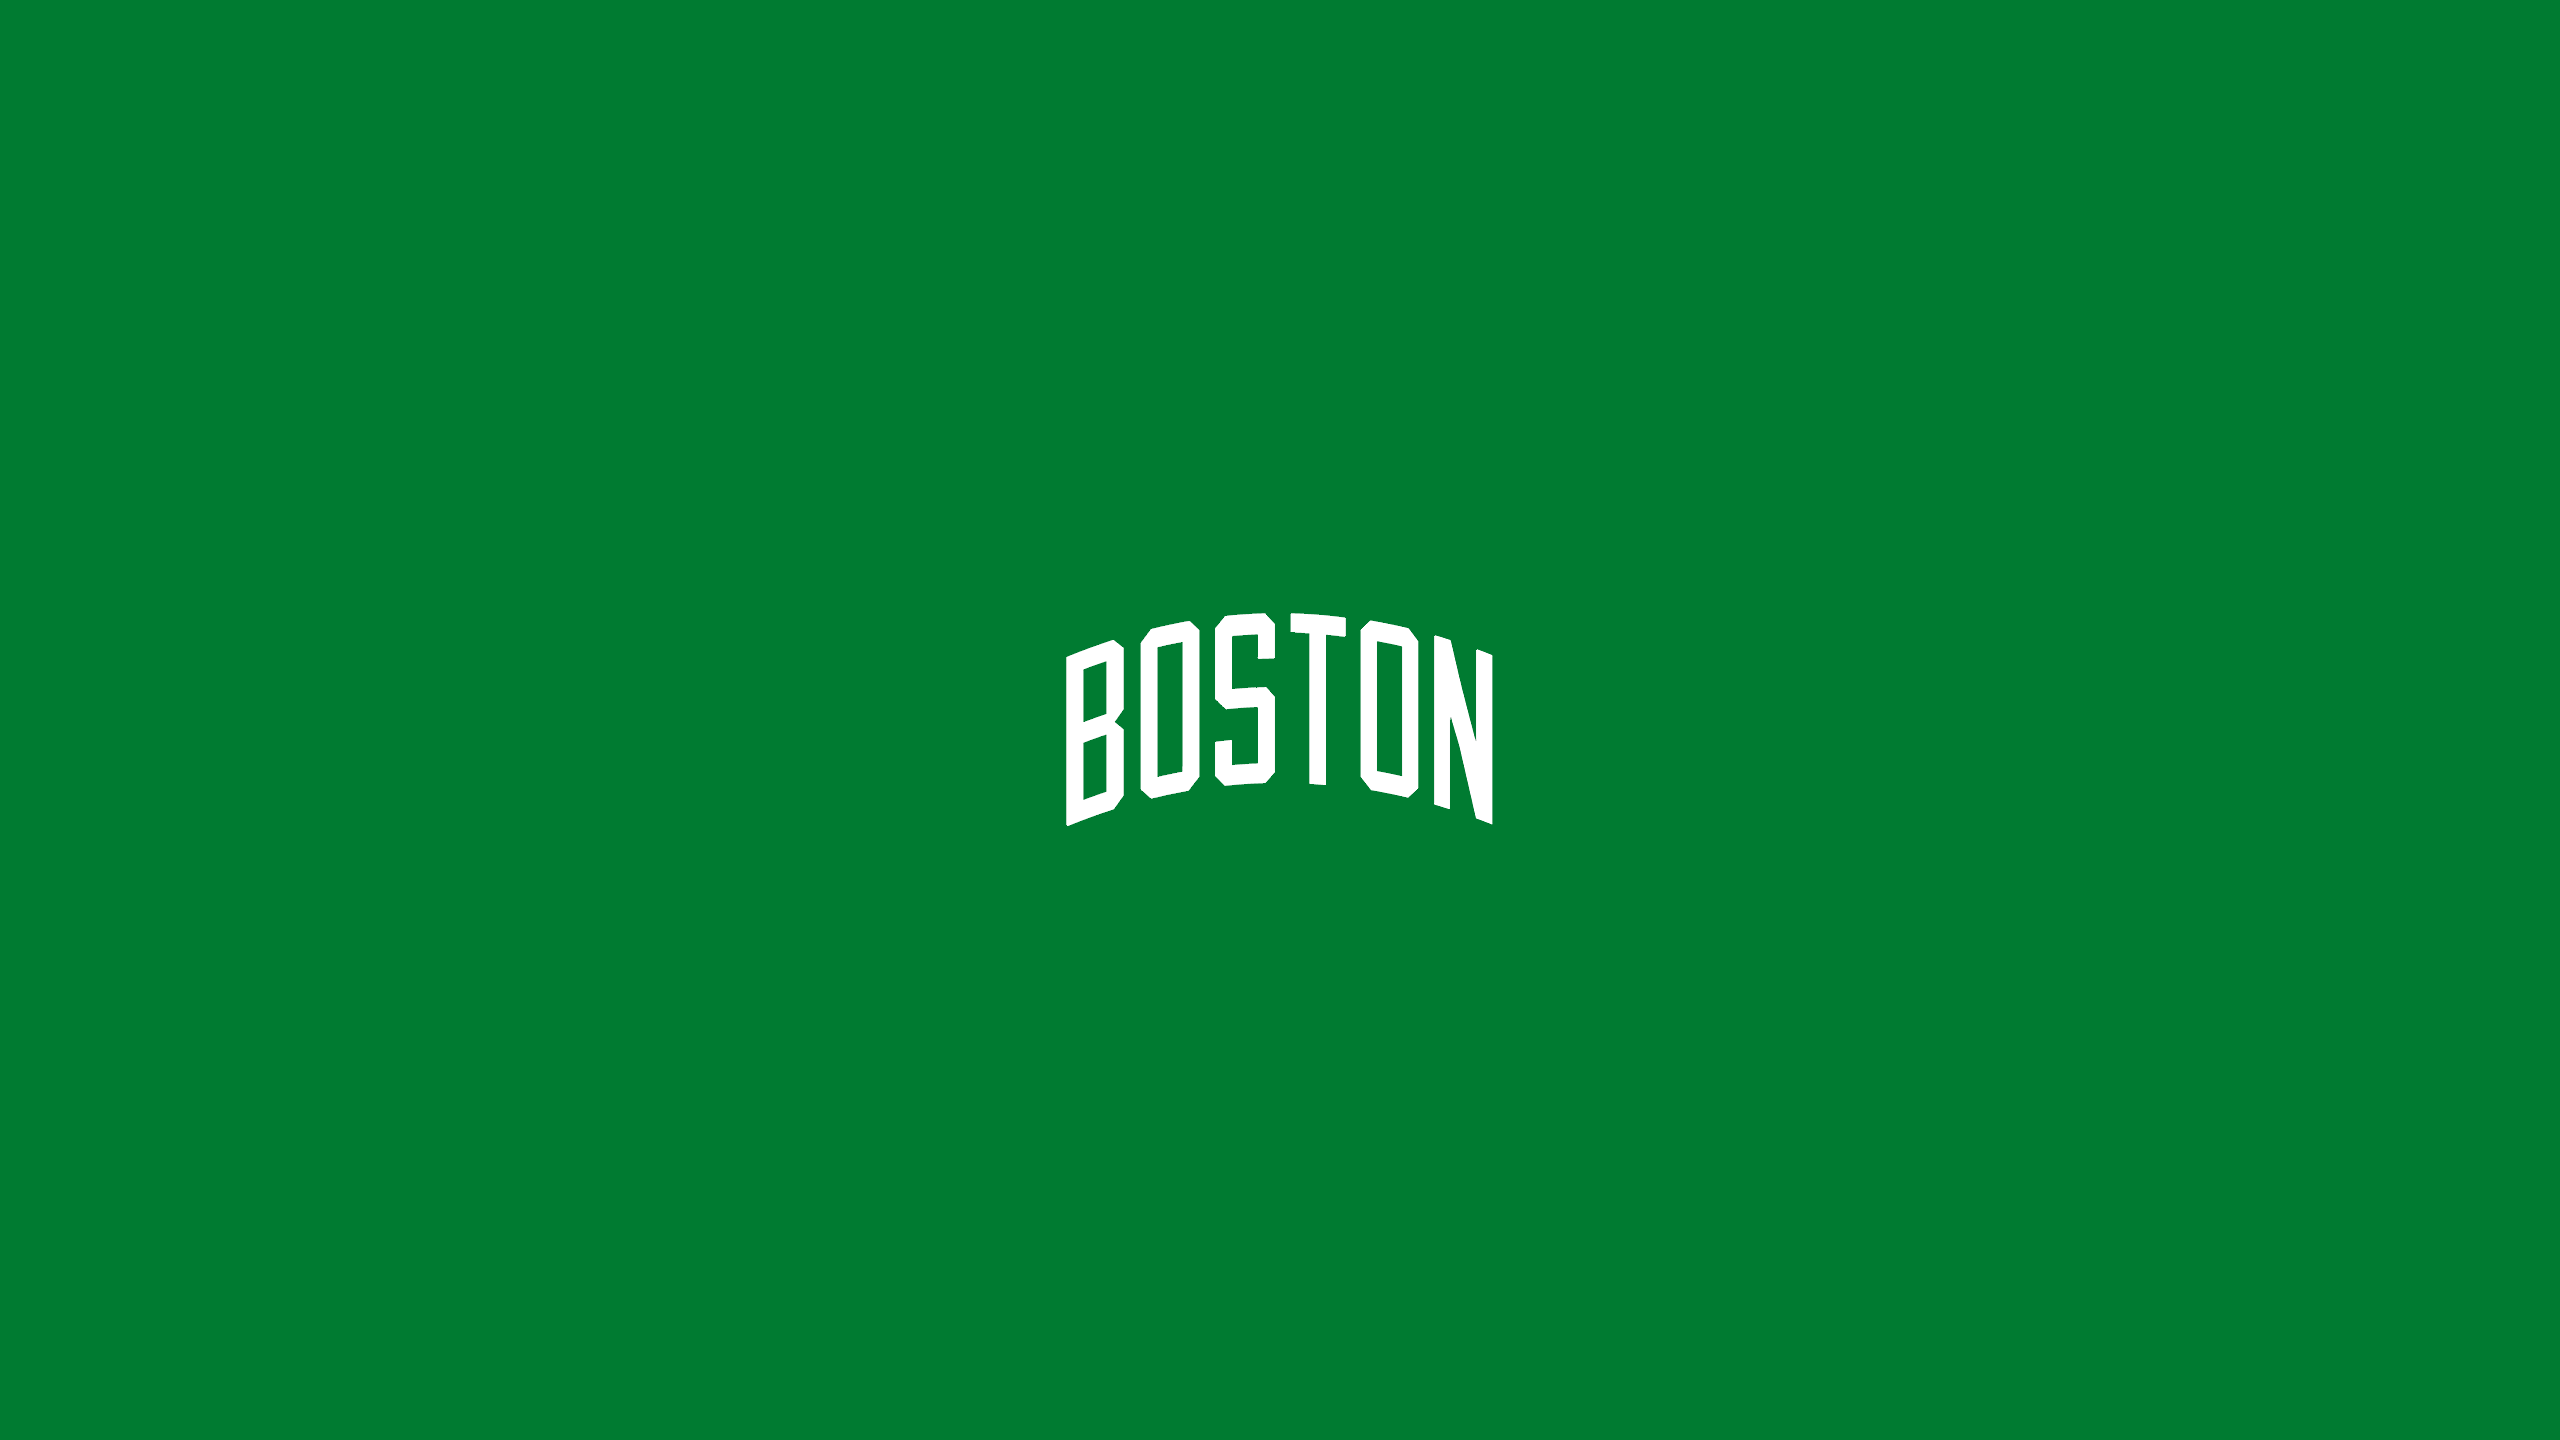 Boston Celtics (Away)